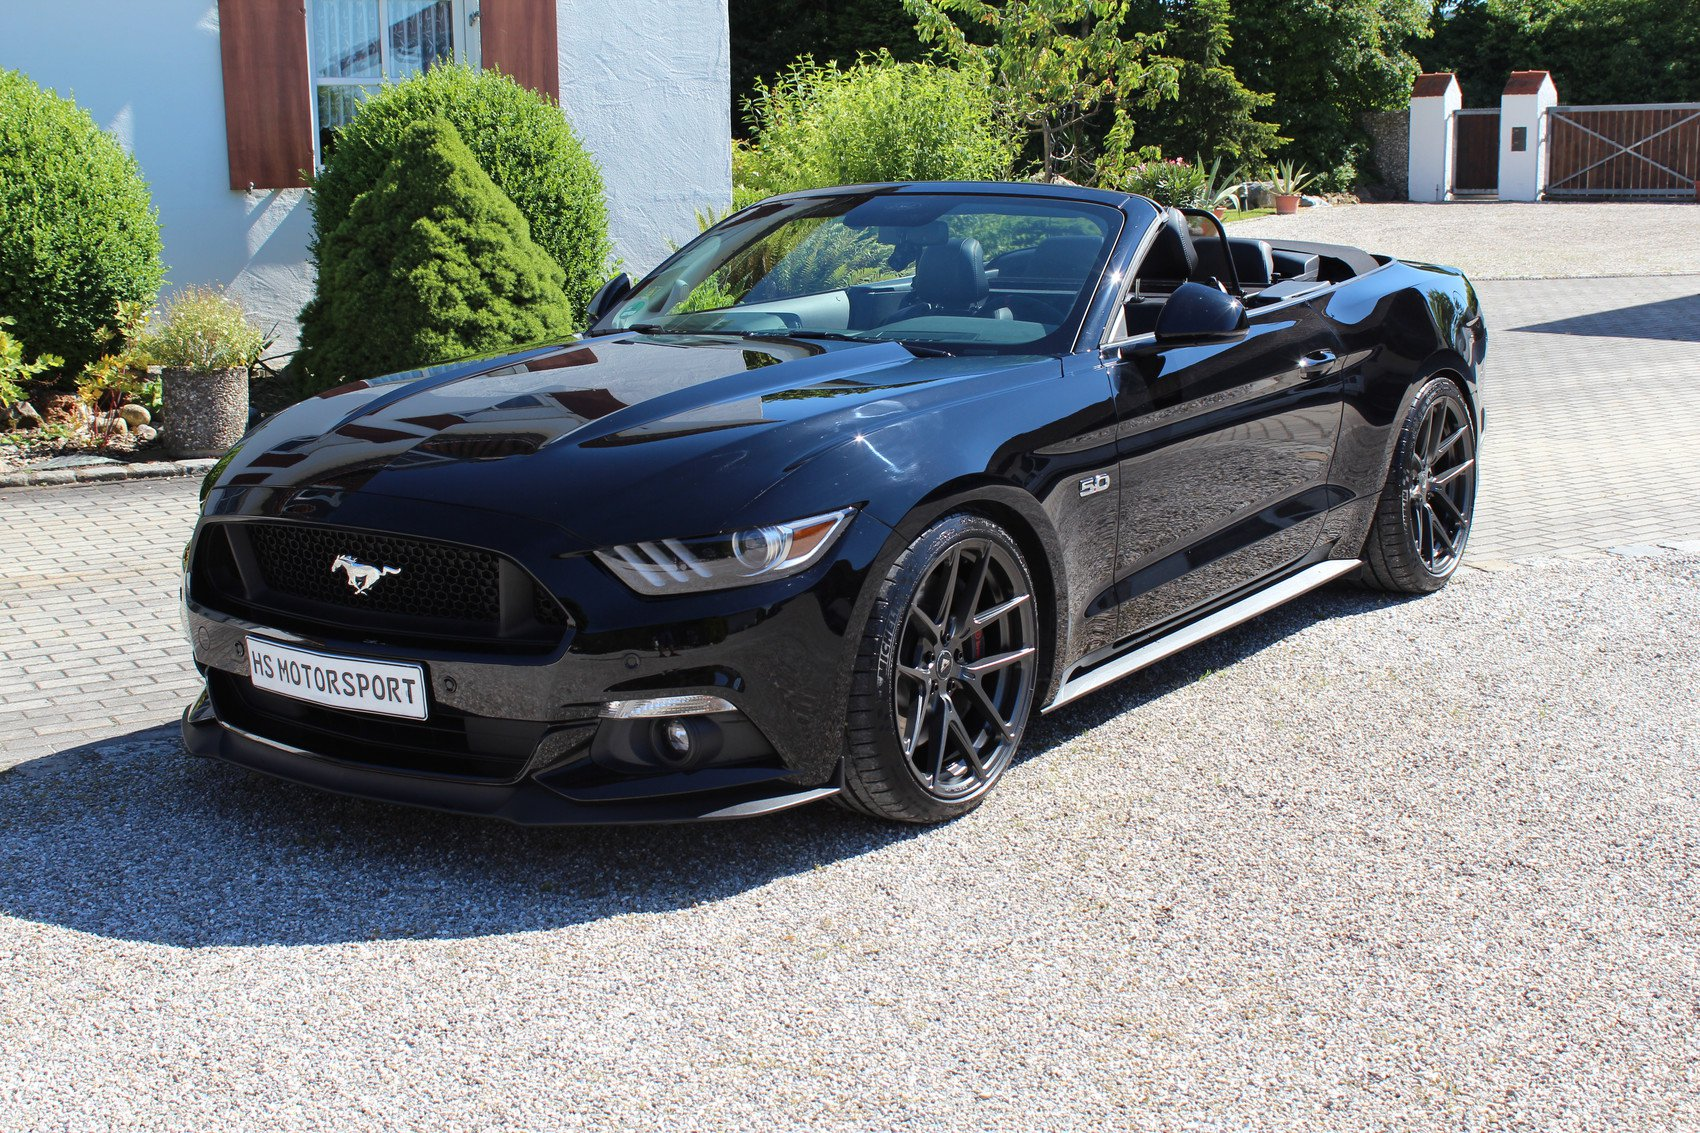 Hs motorsport ford mustang gt convertible tuning 1